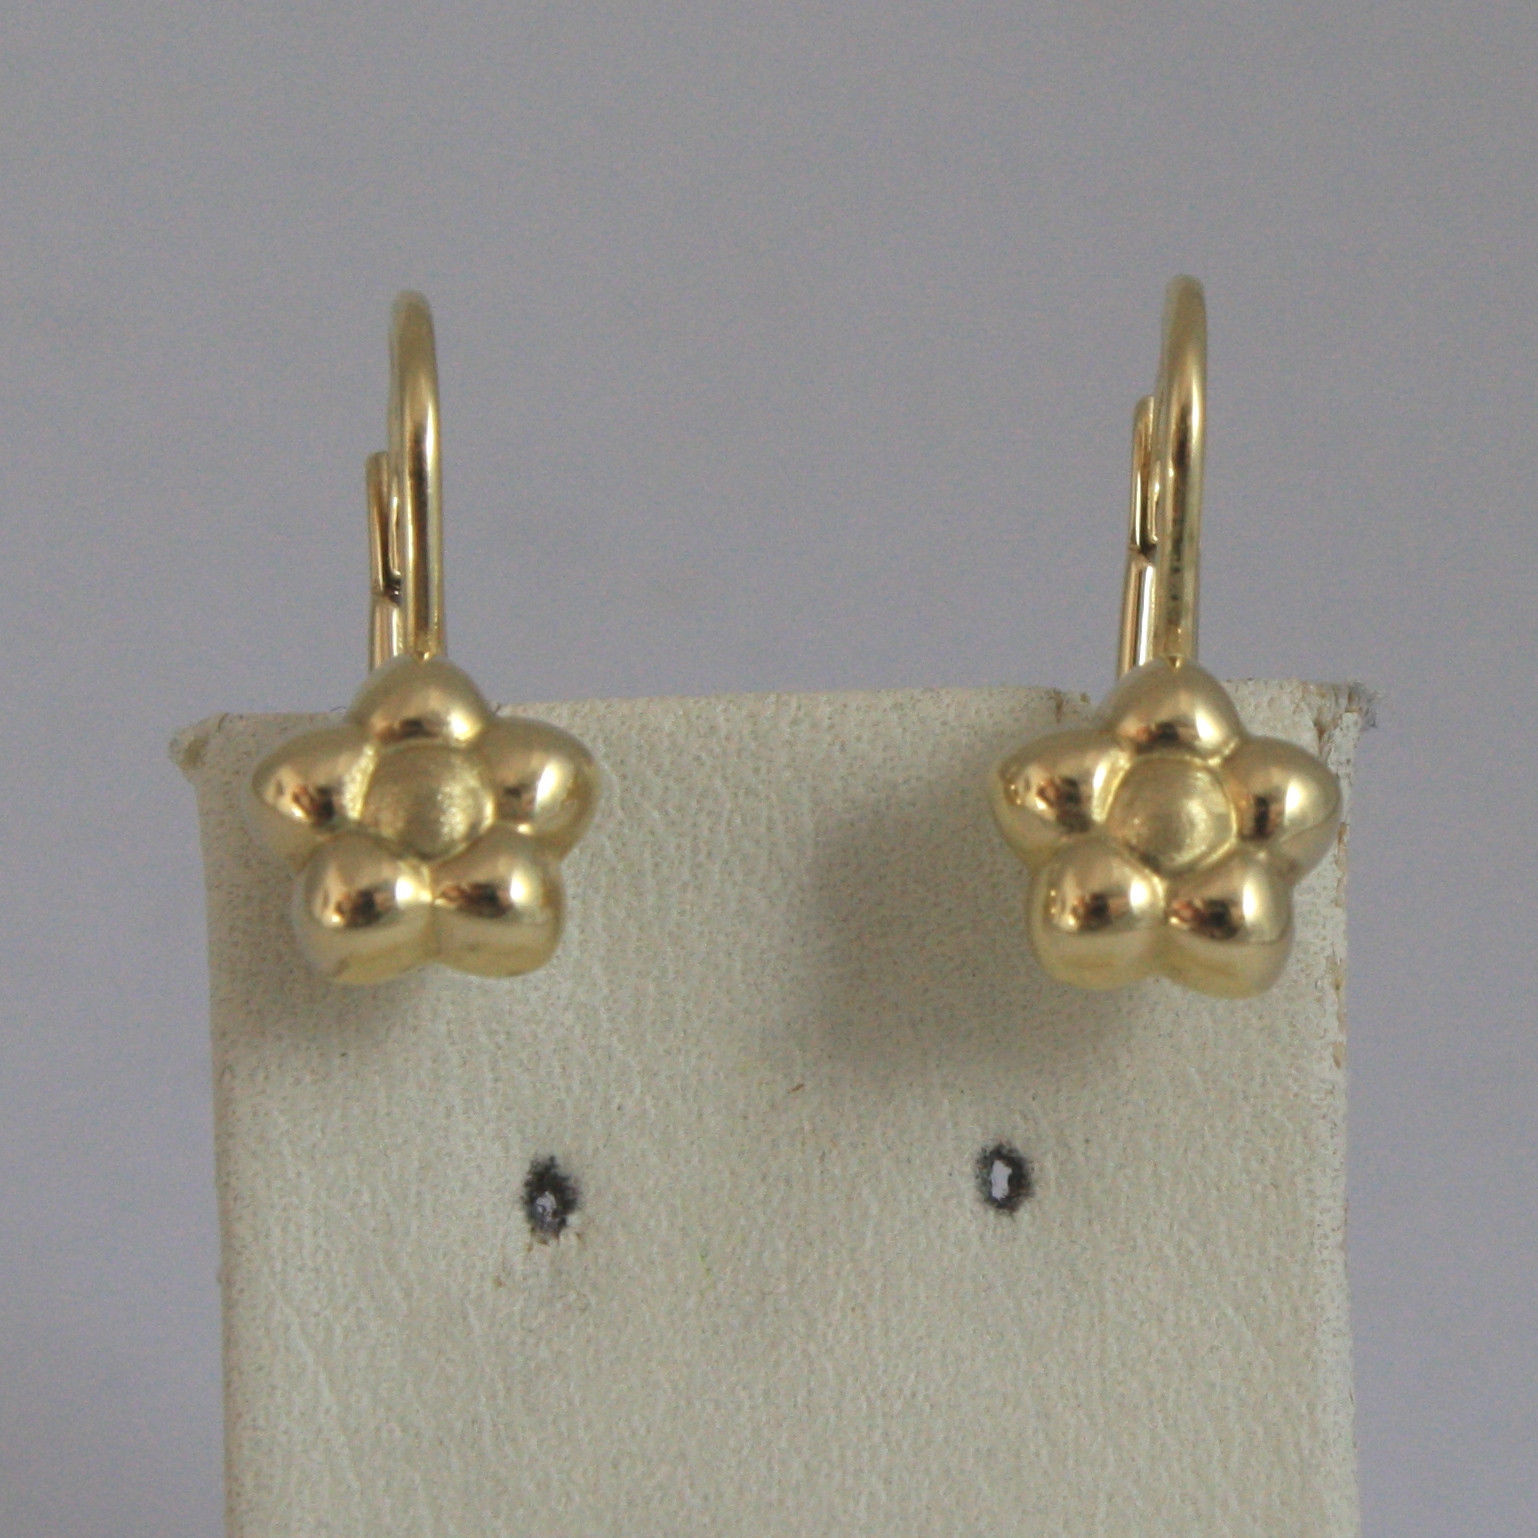 SOLID 18K YELLOW GOLD EARRINGS, WITH FLOWERS, LENGTH 0,63 IN, MADE IN ITALY